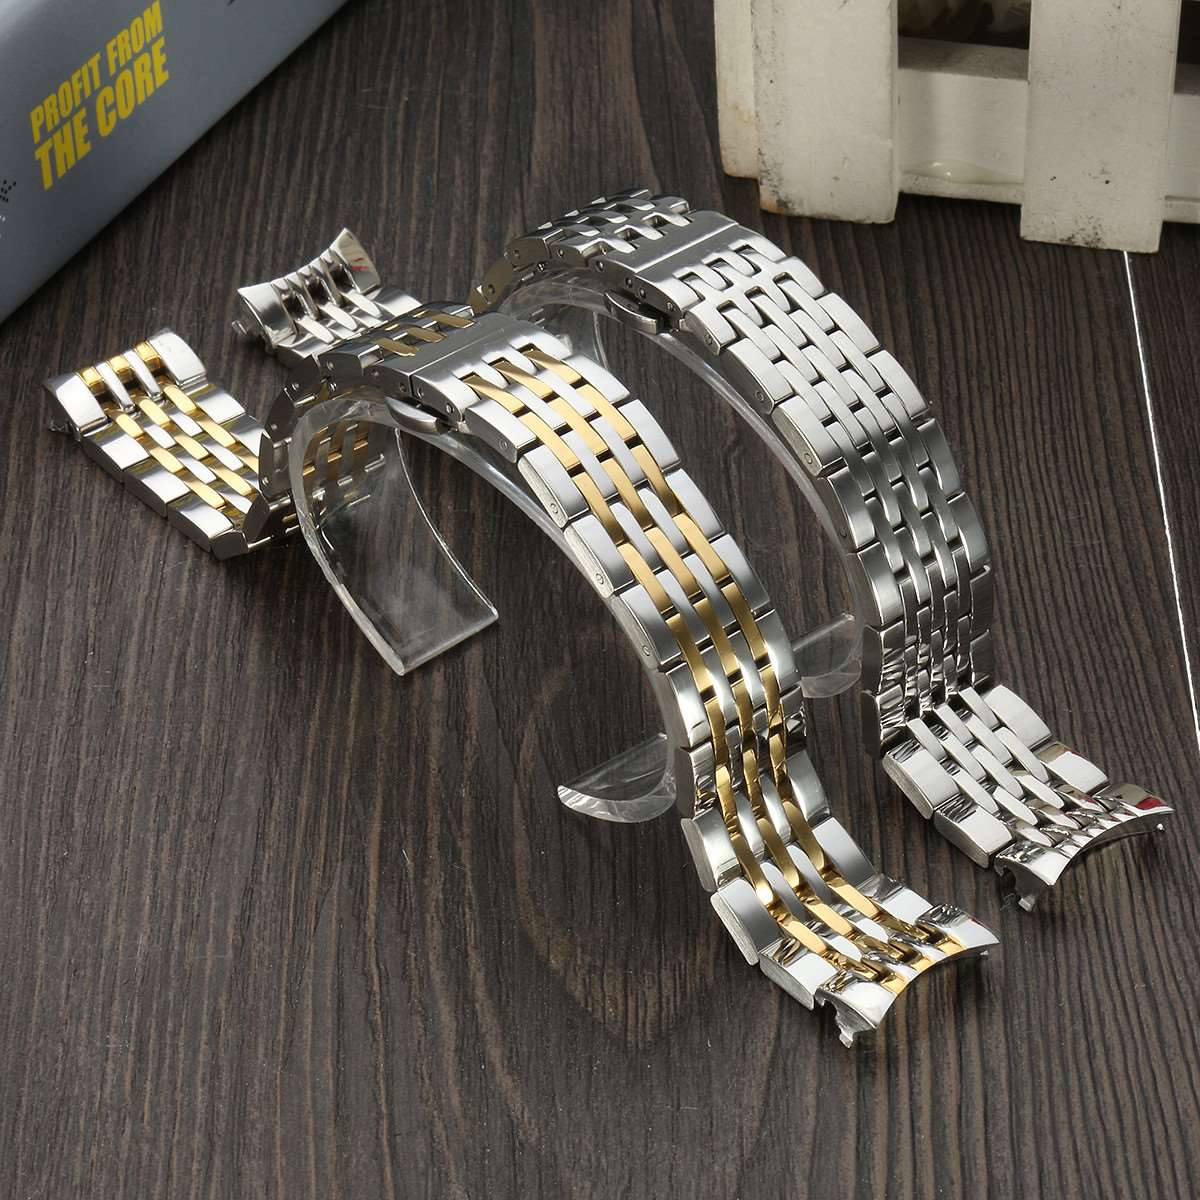 New durable stainless steel wrist bracelet strap 19mm for Stainless steel jewelry durability